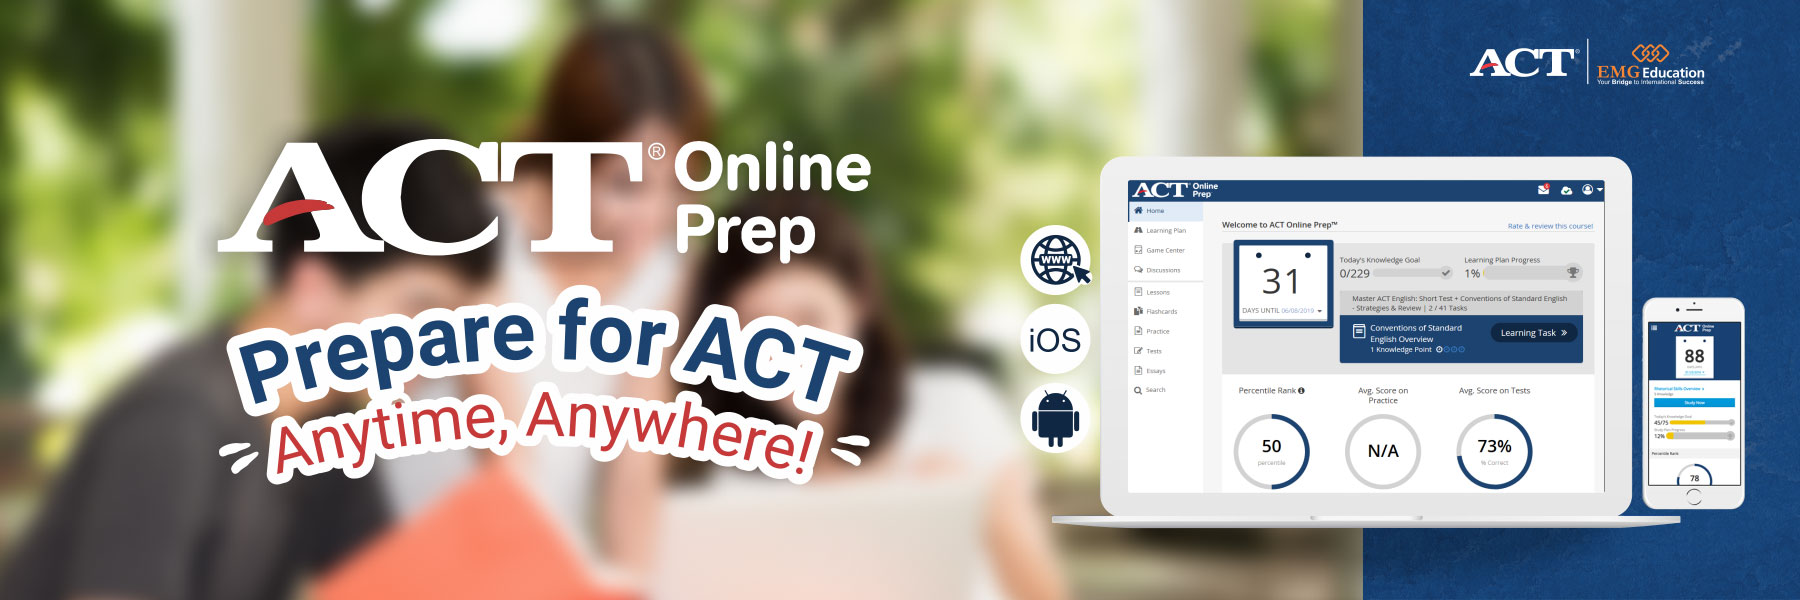 AOP - Prepare for ACT - Anytime, Anywhere